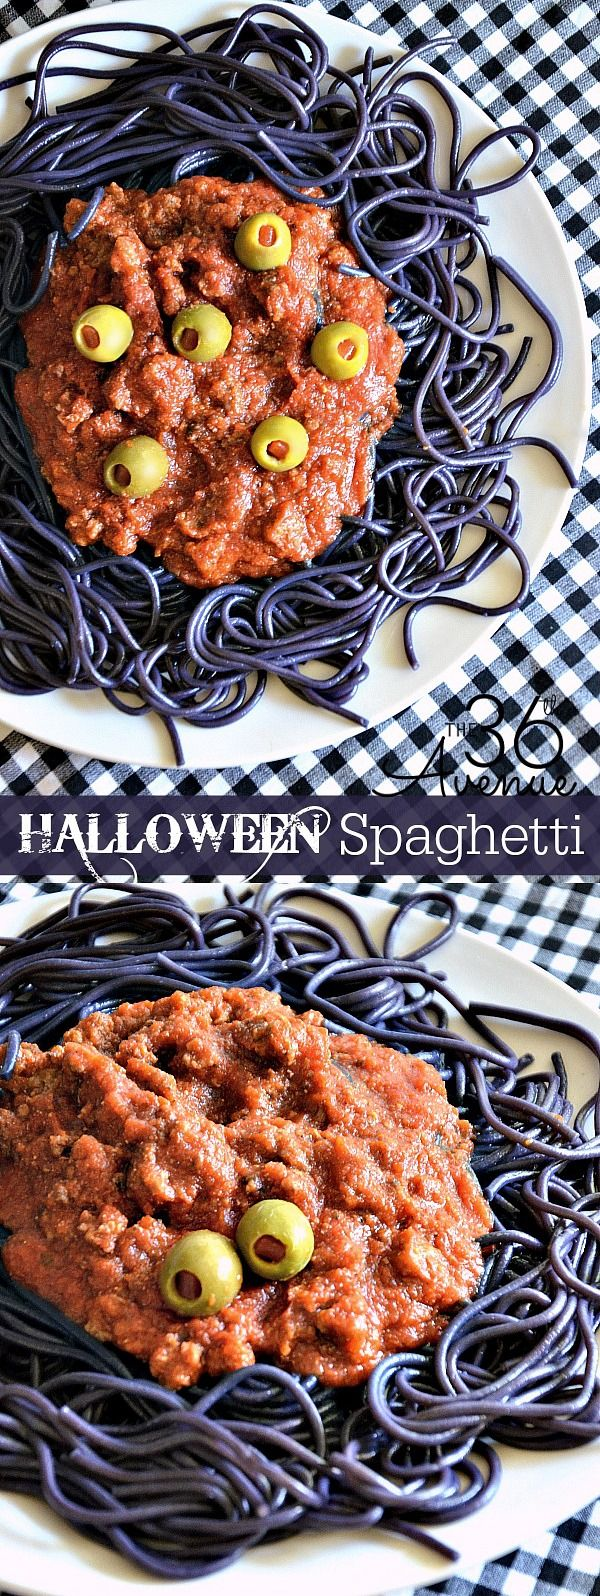 Halloween Recipe - This Halloween Spaghetti tastes delicious and looks…